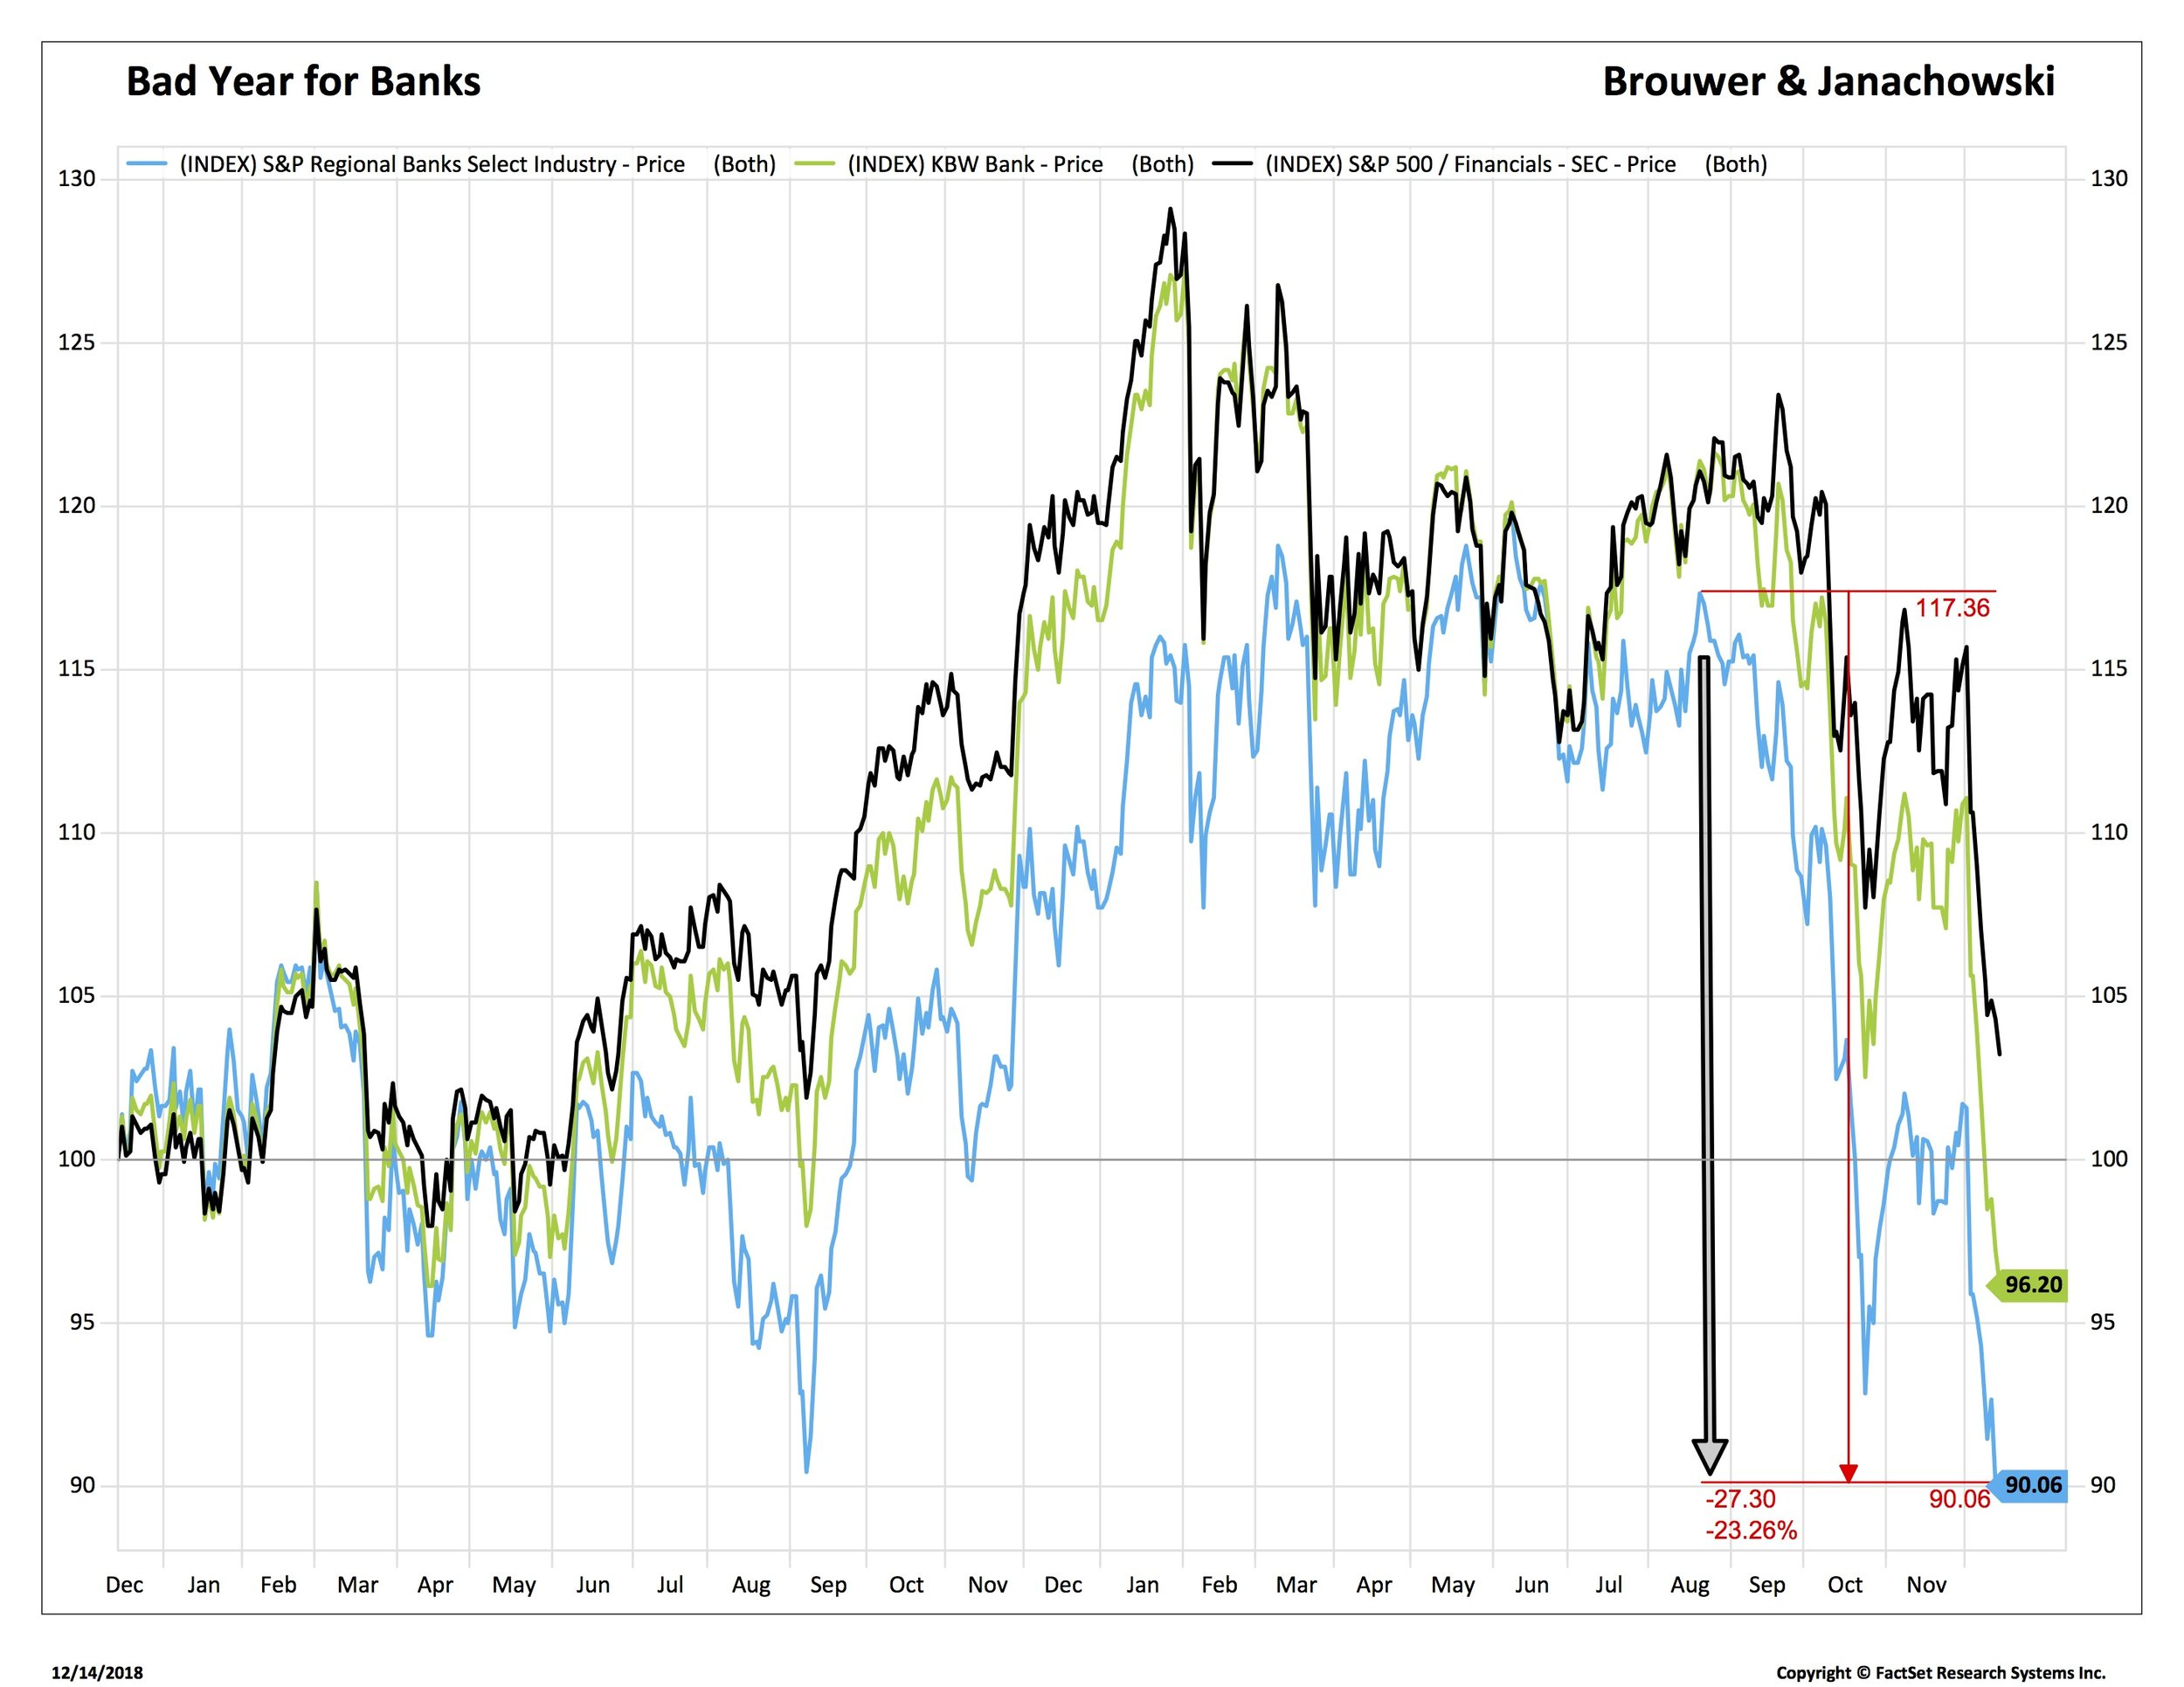 4. Financials and Banks_SPSIRBK-CME.jpg